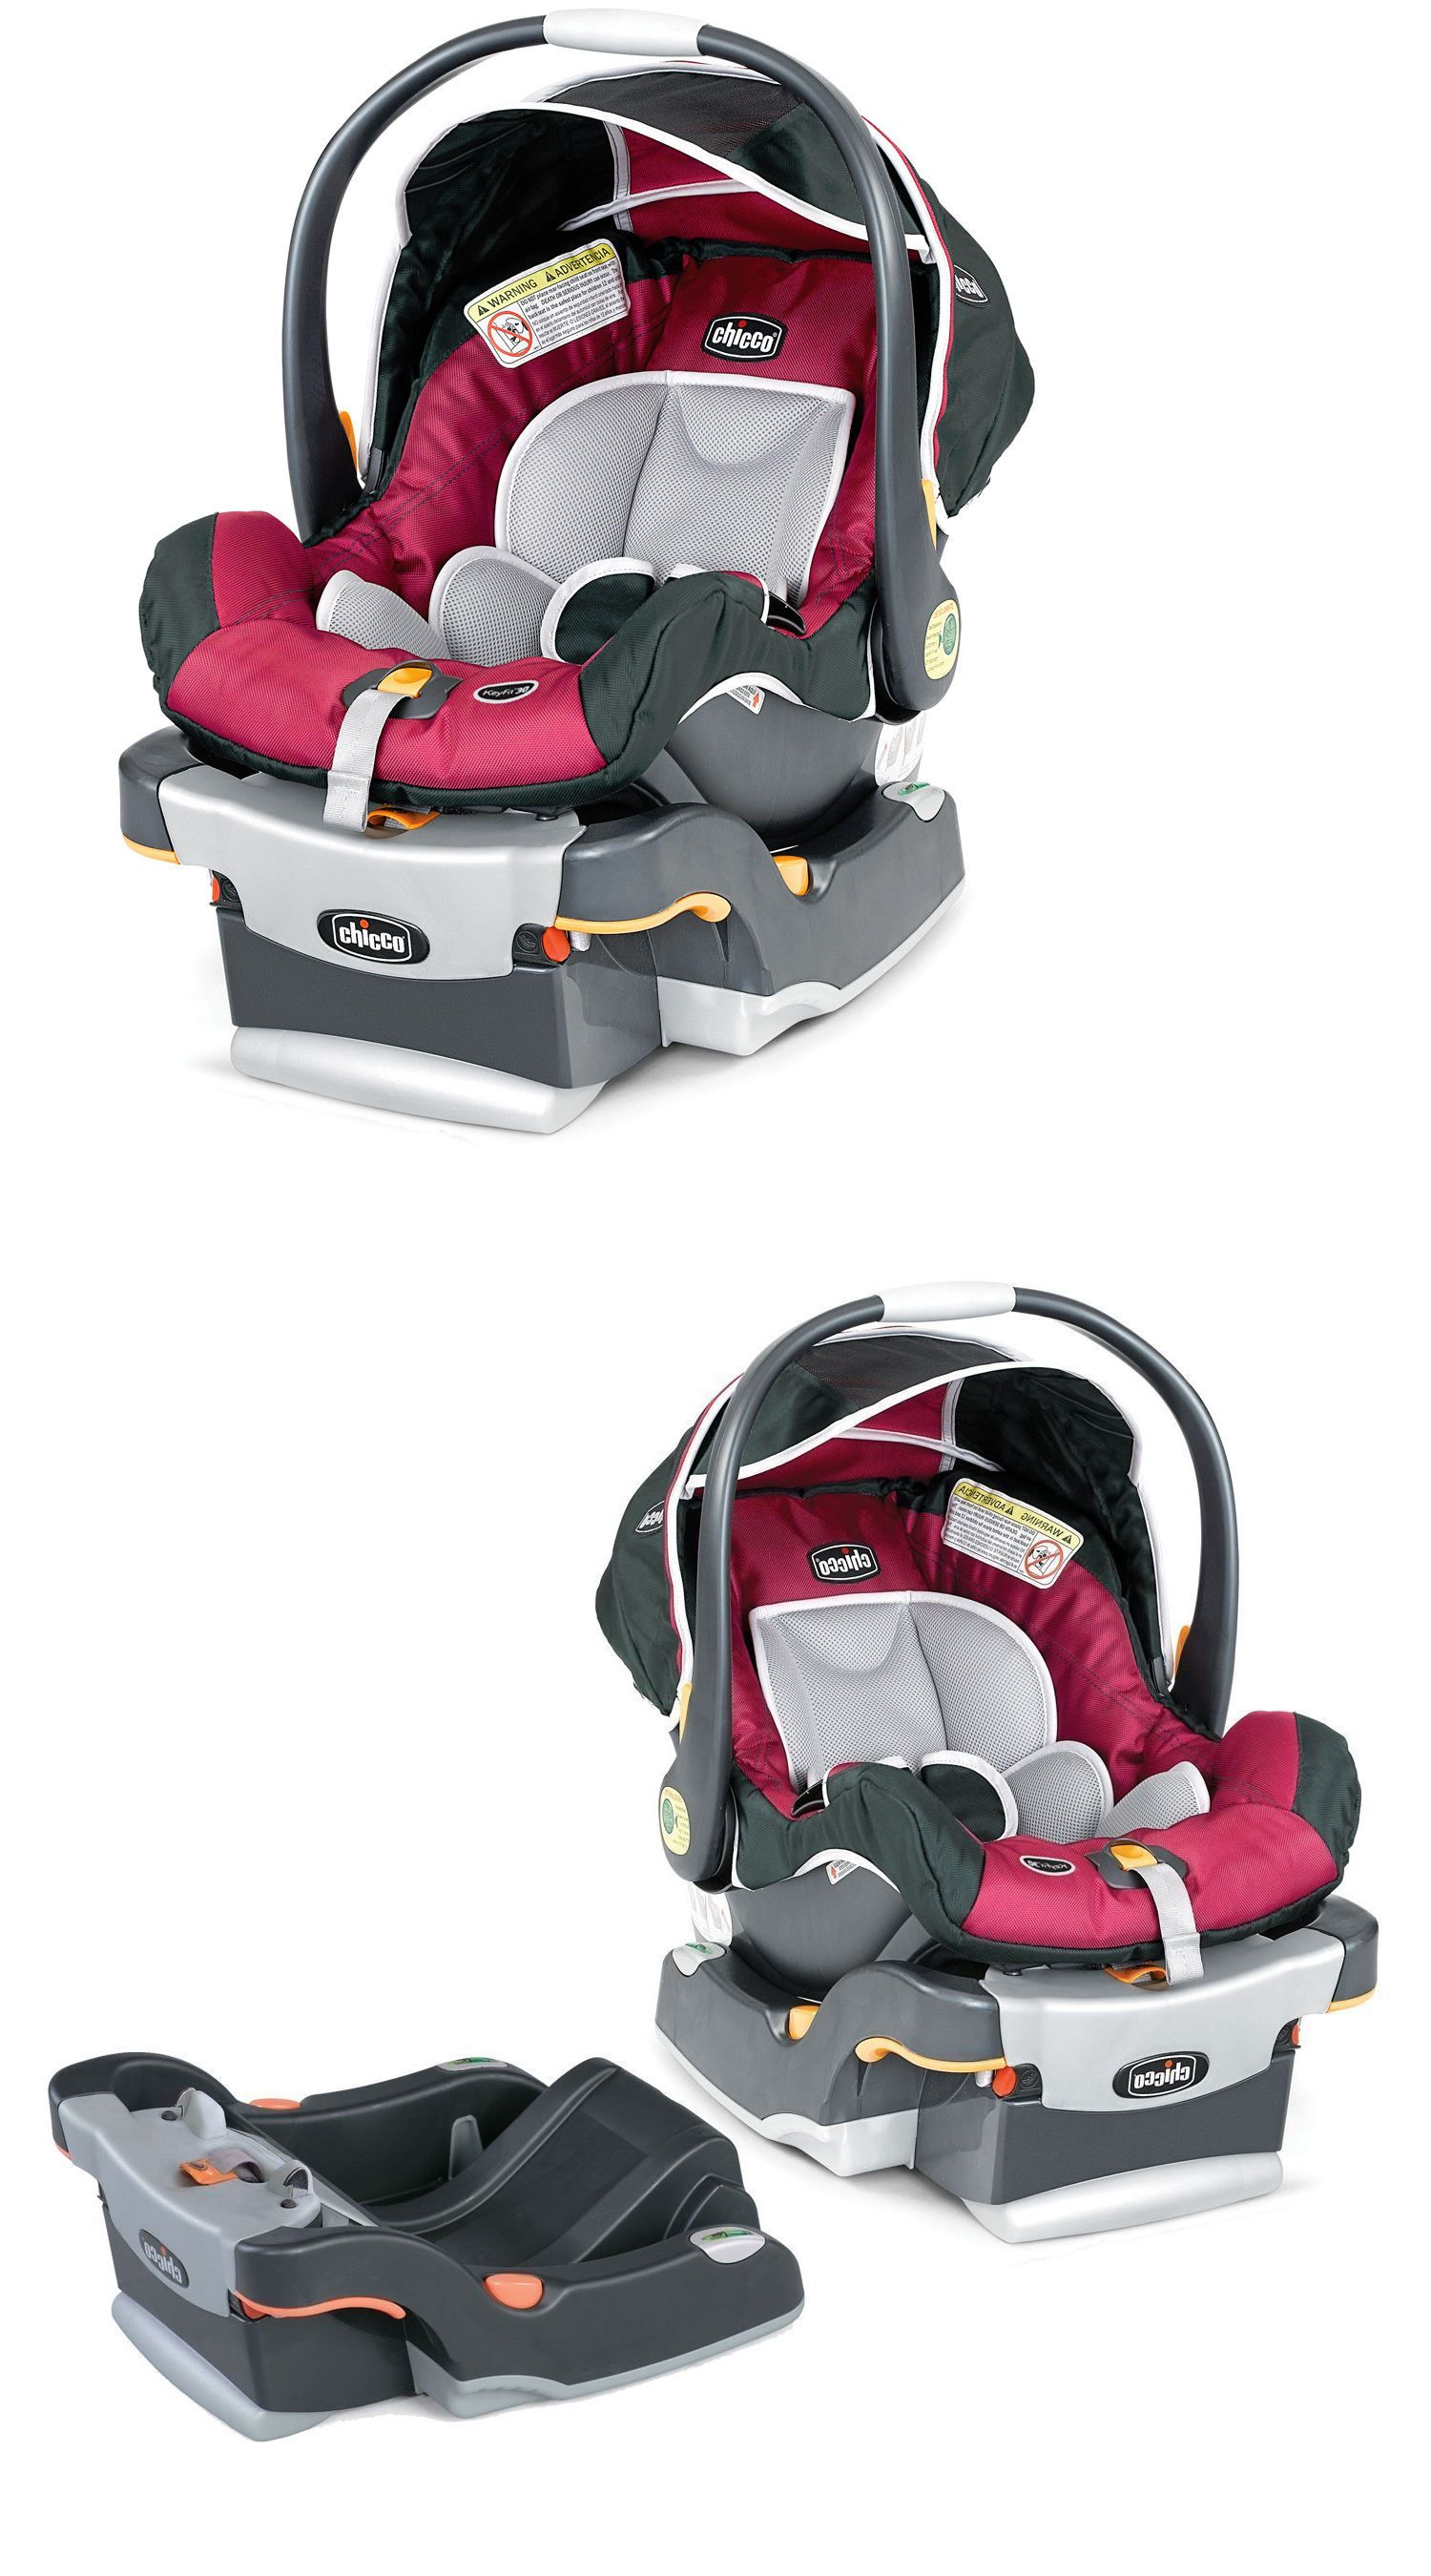 Infant Car Seat 5 20 Lbs 66696 Chicco Keyfit 30 Infant Car Seat And